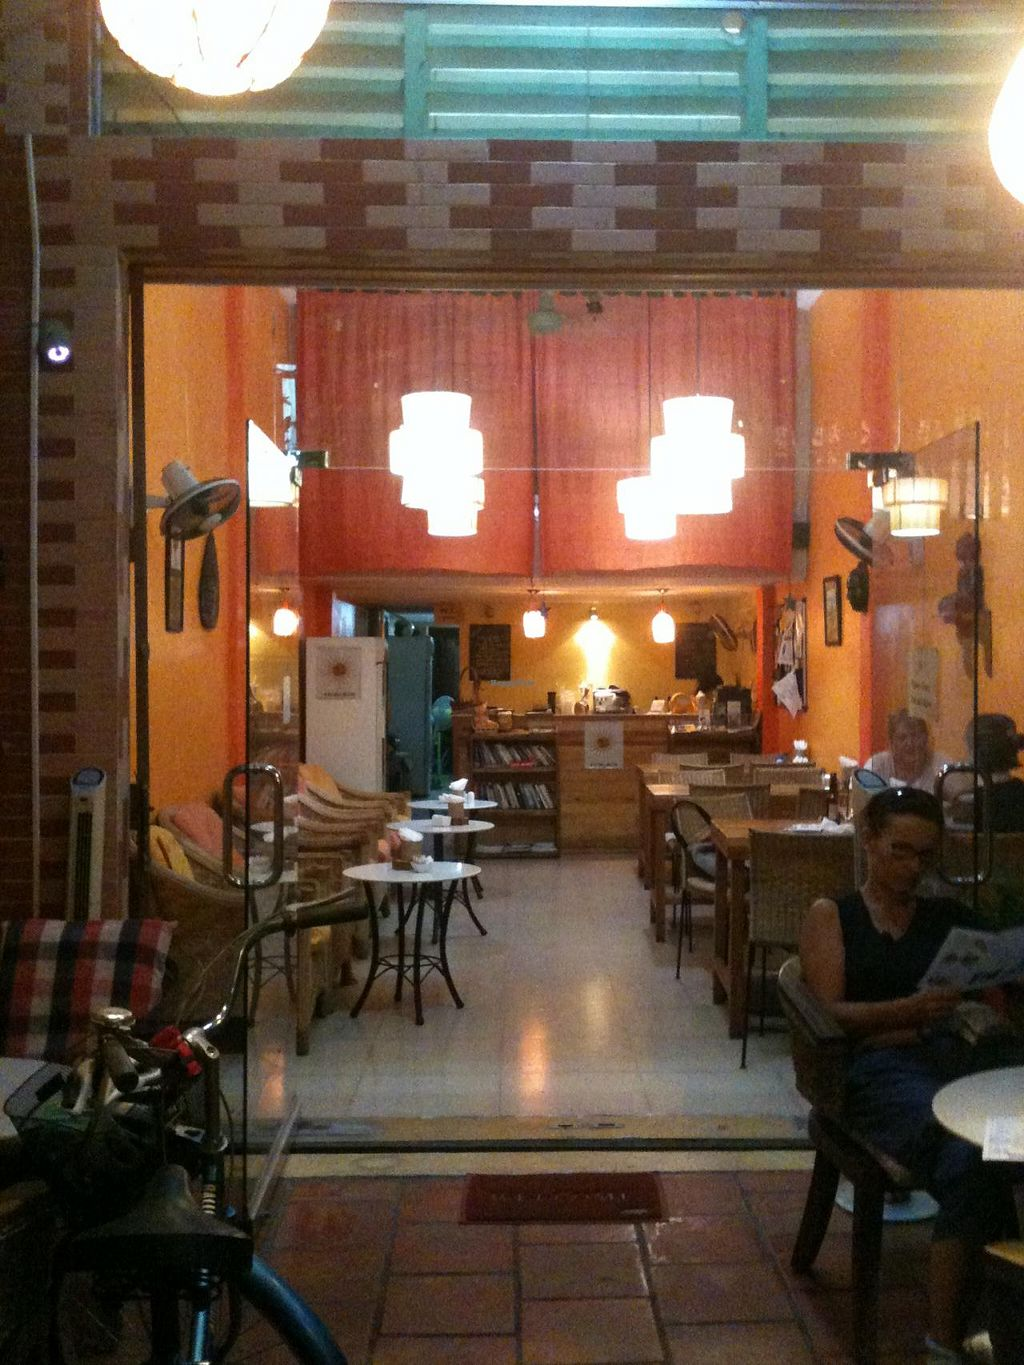 """Photo of Cafe Soleil  by <a href=""""/members/profile/heloisepe"""">heloisepe</a> <br/>Inside the coffee, nice and cosy decoration, some books <br/> July 27, 2015  - <a href='/contact/abuse/image/33811/111153'>Report</a>"""